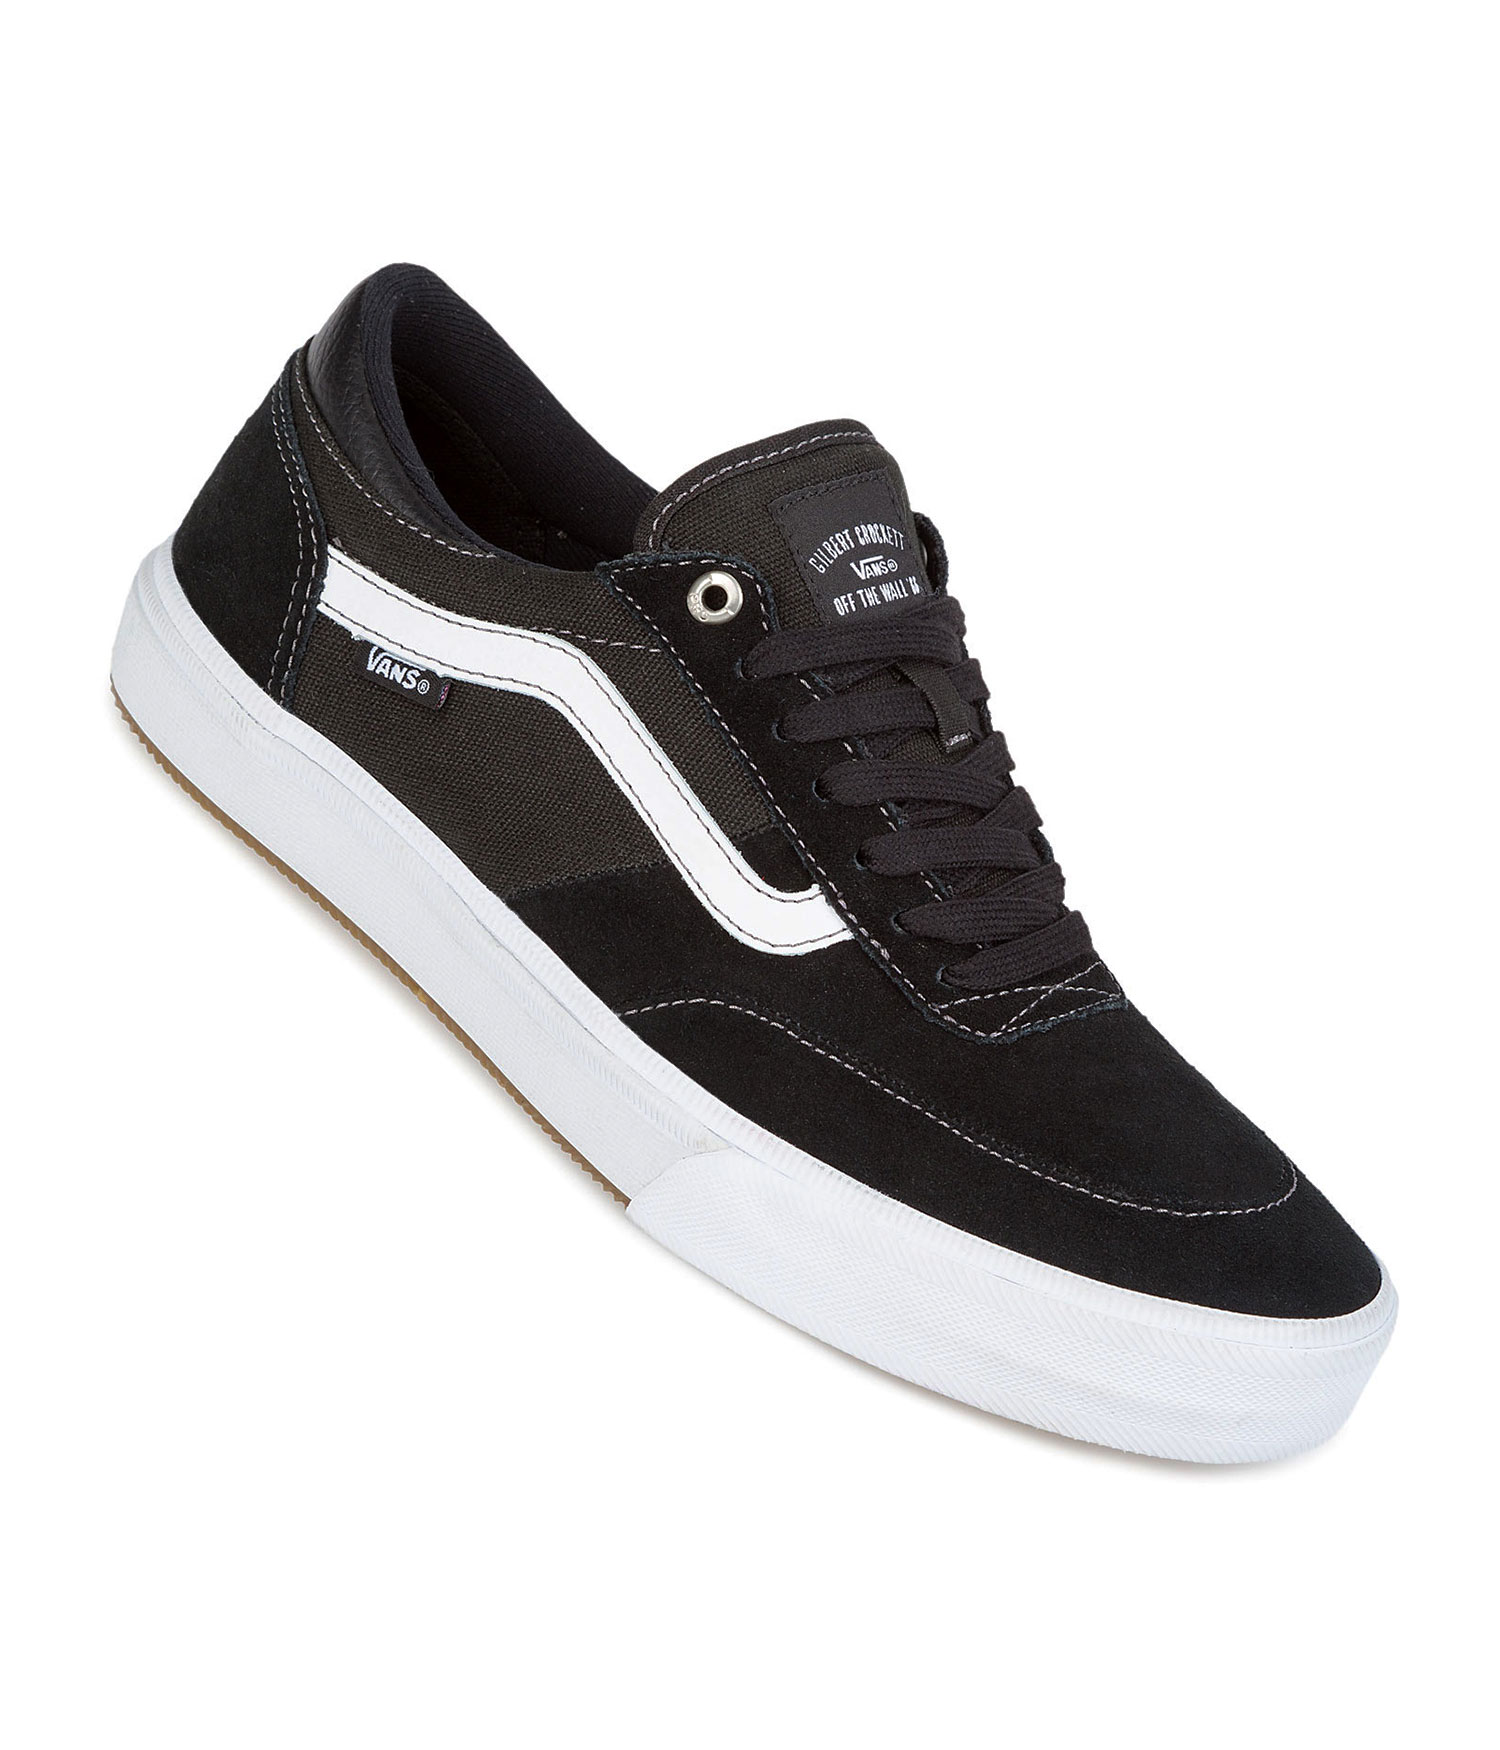 Vans Crockett White Chaussureblack Pro 2 Gilbert jSA4qc5R3L